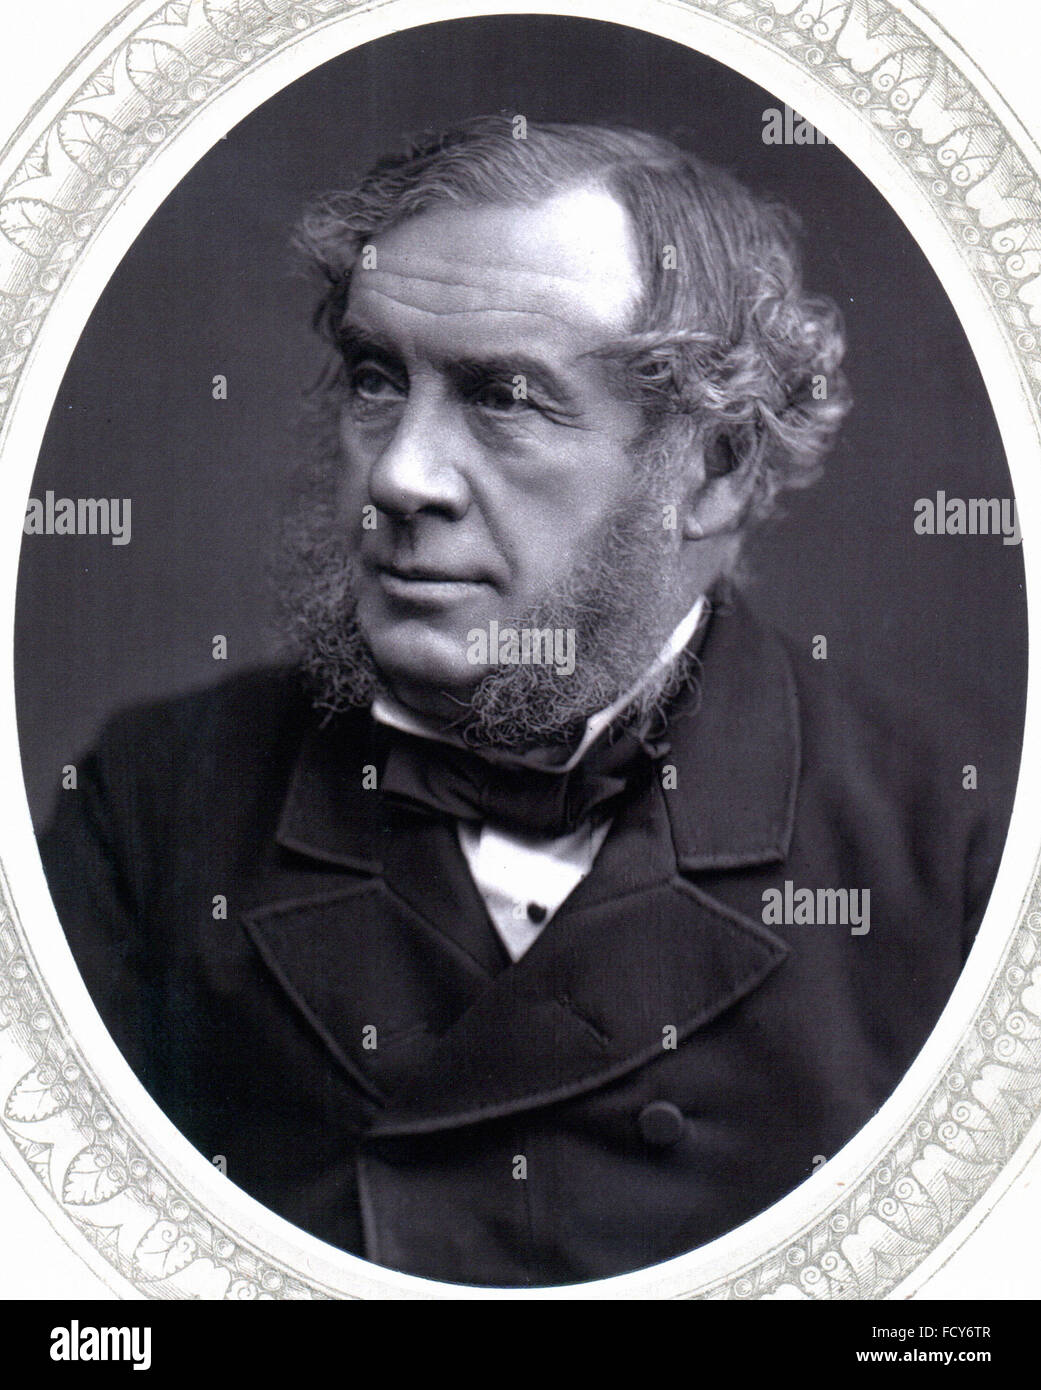 portrait of william robert grove 1811 1896 physicist and chemist - Stock Image